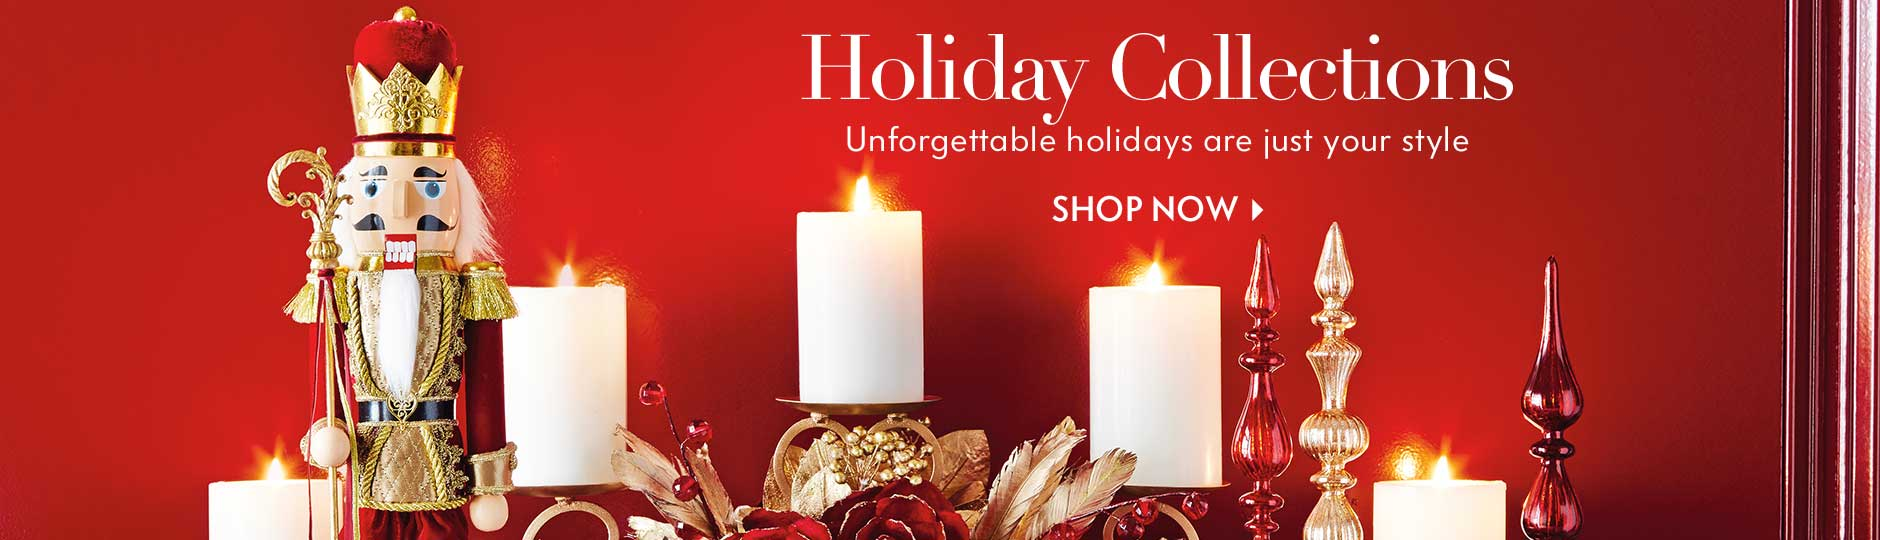 Holiday Collectinons - Unforgettable holidays are just your style